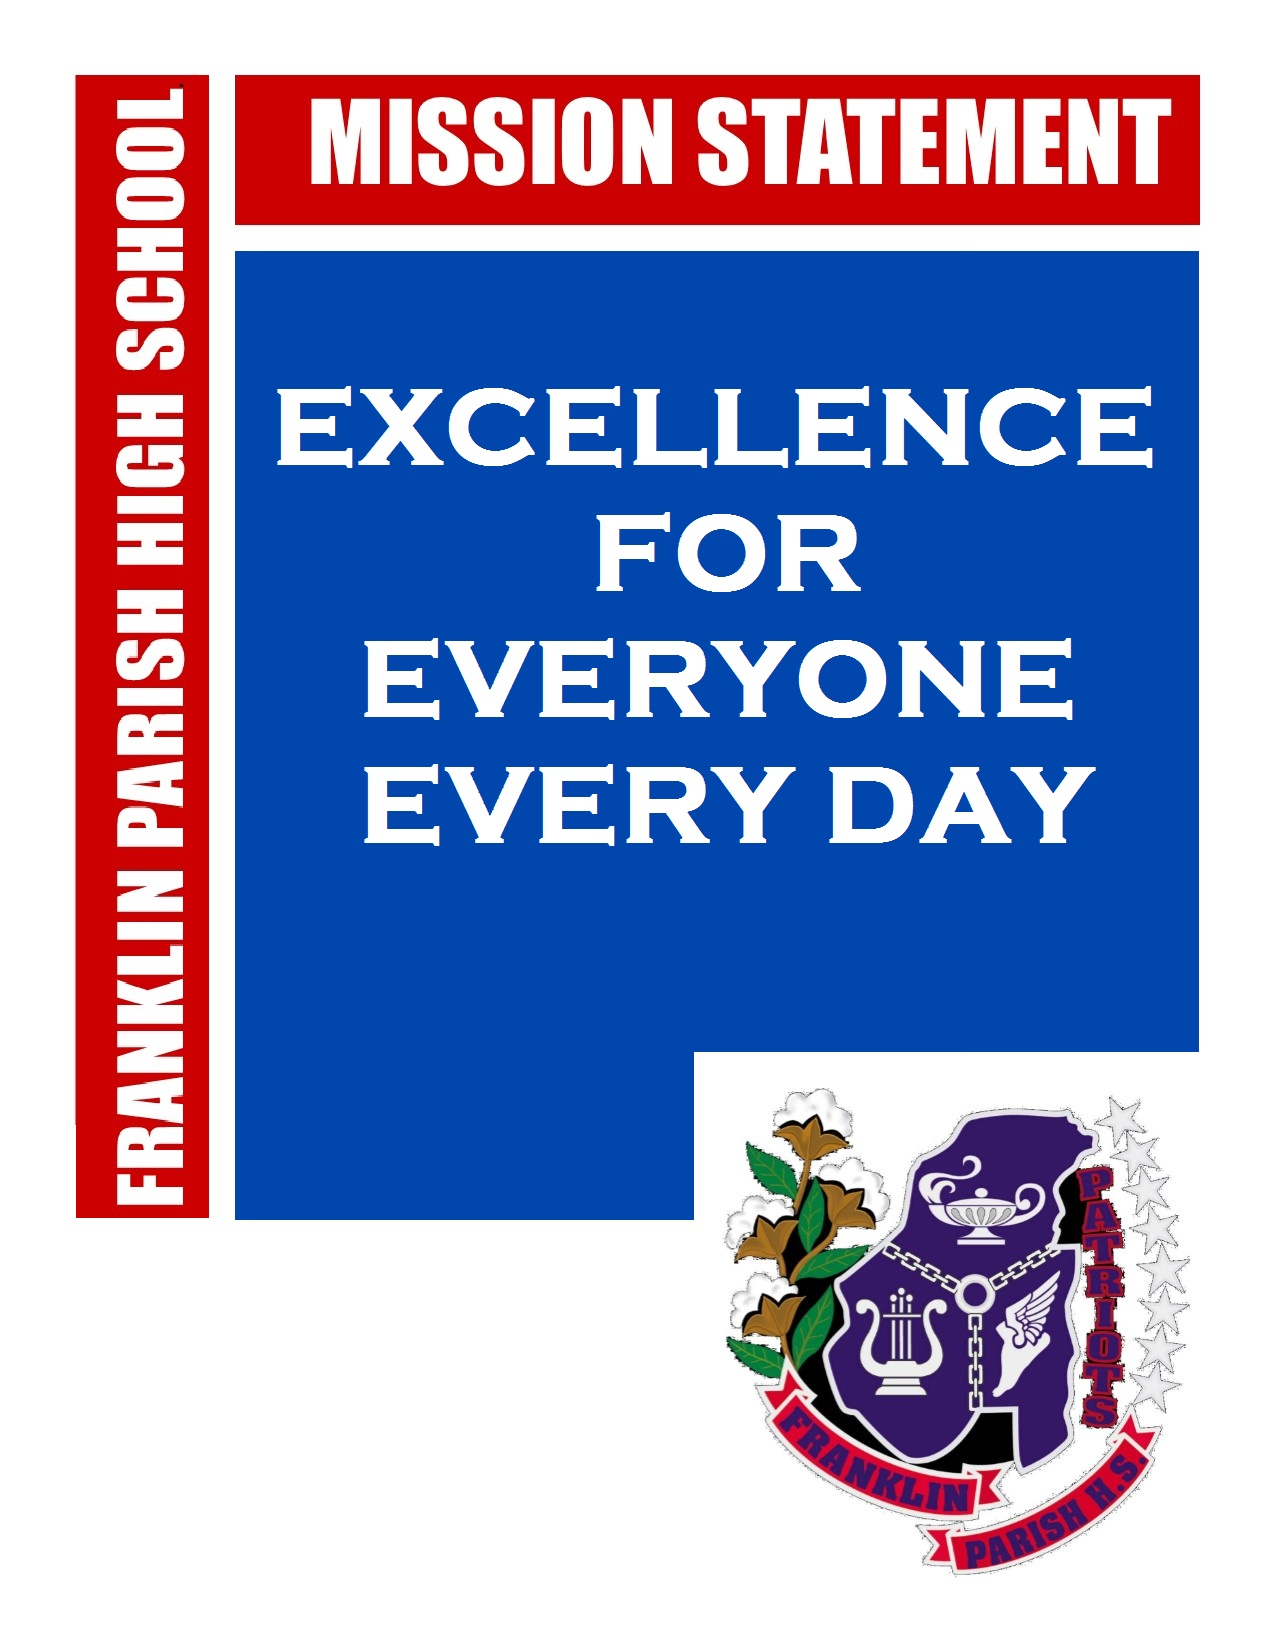 Franklin Parish High School Mission Statement Excellence for Everyone Every Day